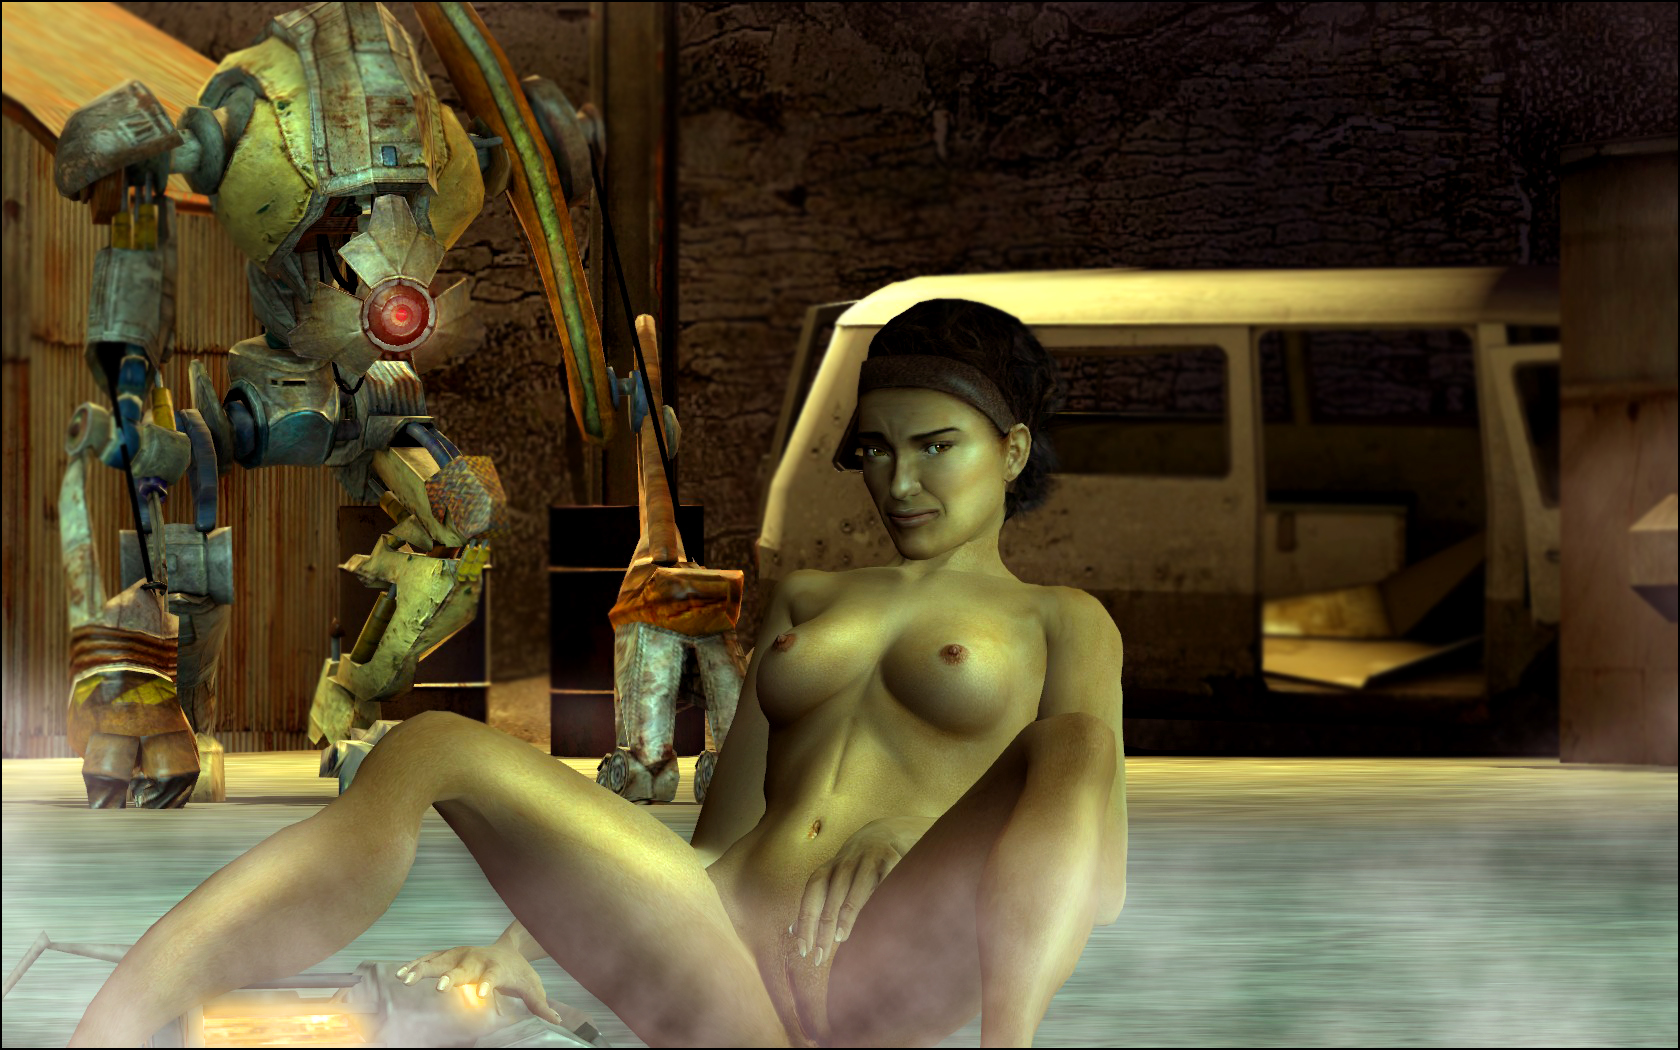 Half life2 alex nude pic anime streaming